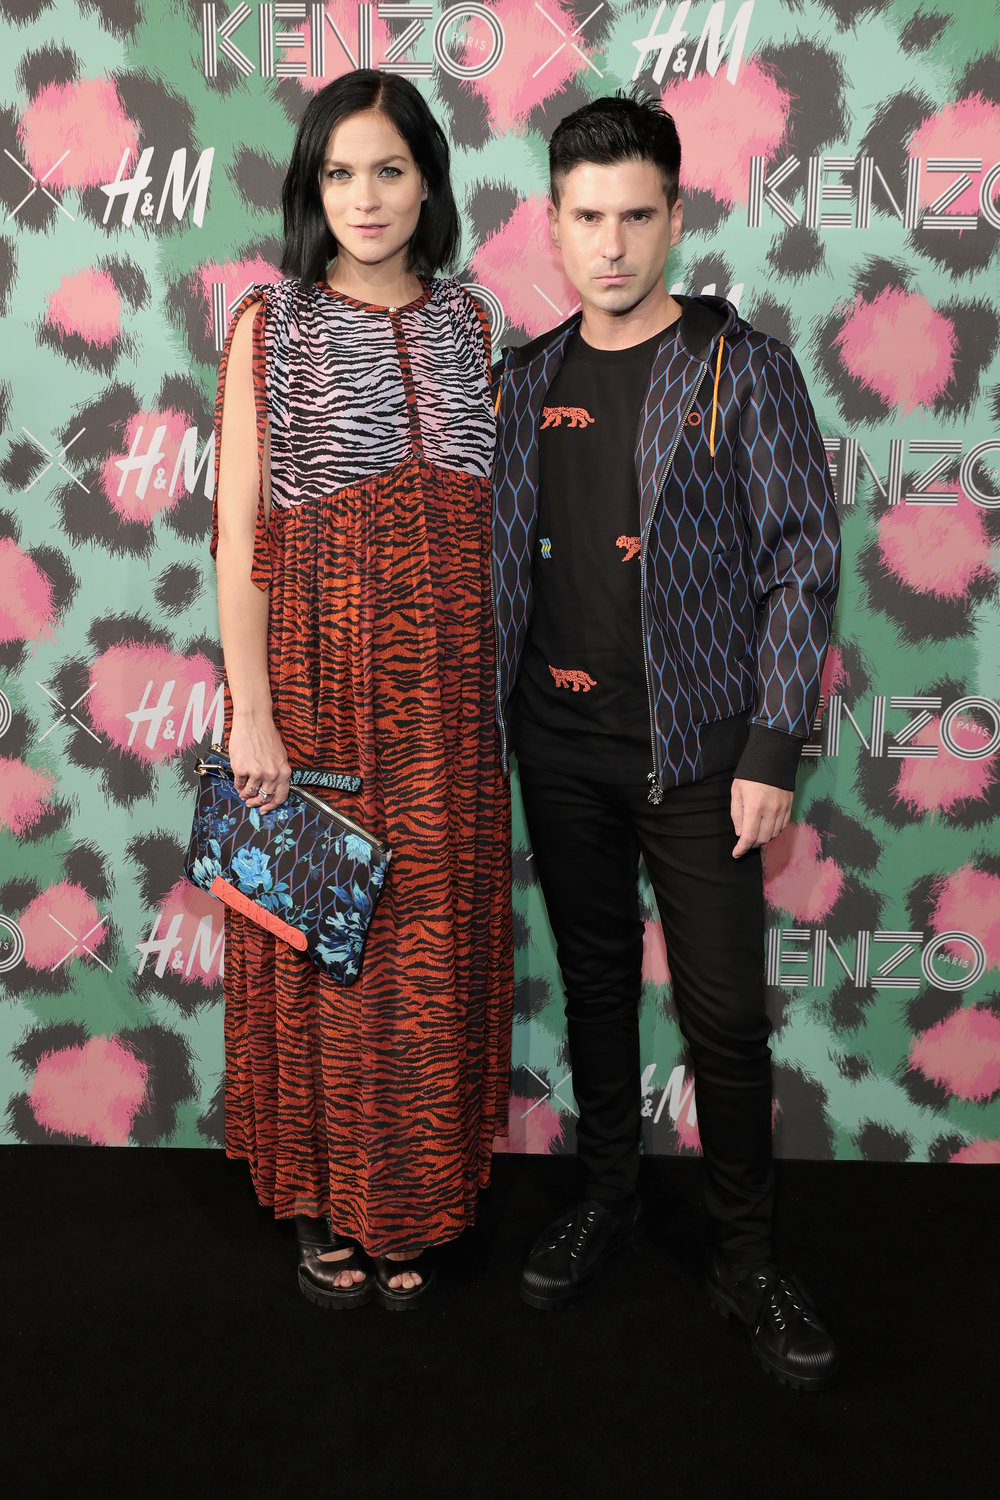 NEW YORK, NY - OCTOBER 19:  Leigh Lezark and Geordon Nicol attend KENZO x H&M Launch Event Directed By Jean-Paul Goude'  at Pier 36 on October 19, 2016 in New York City.  (Photo by Neilson Barnard/Getty Images for H&M)